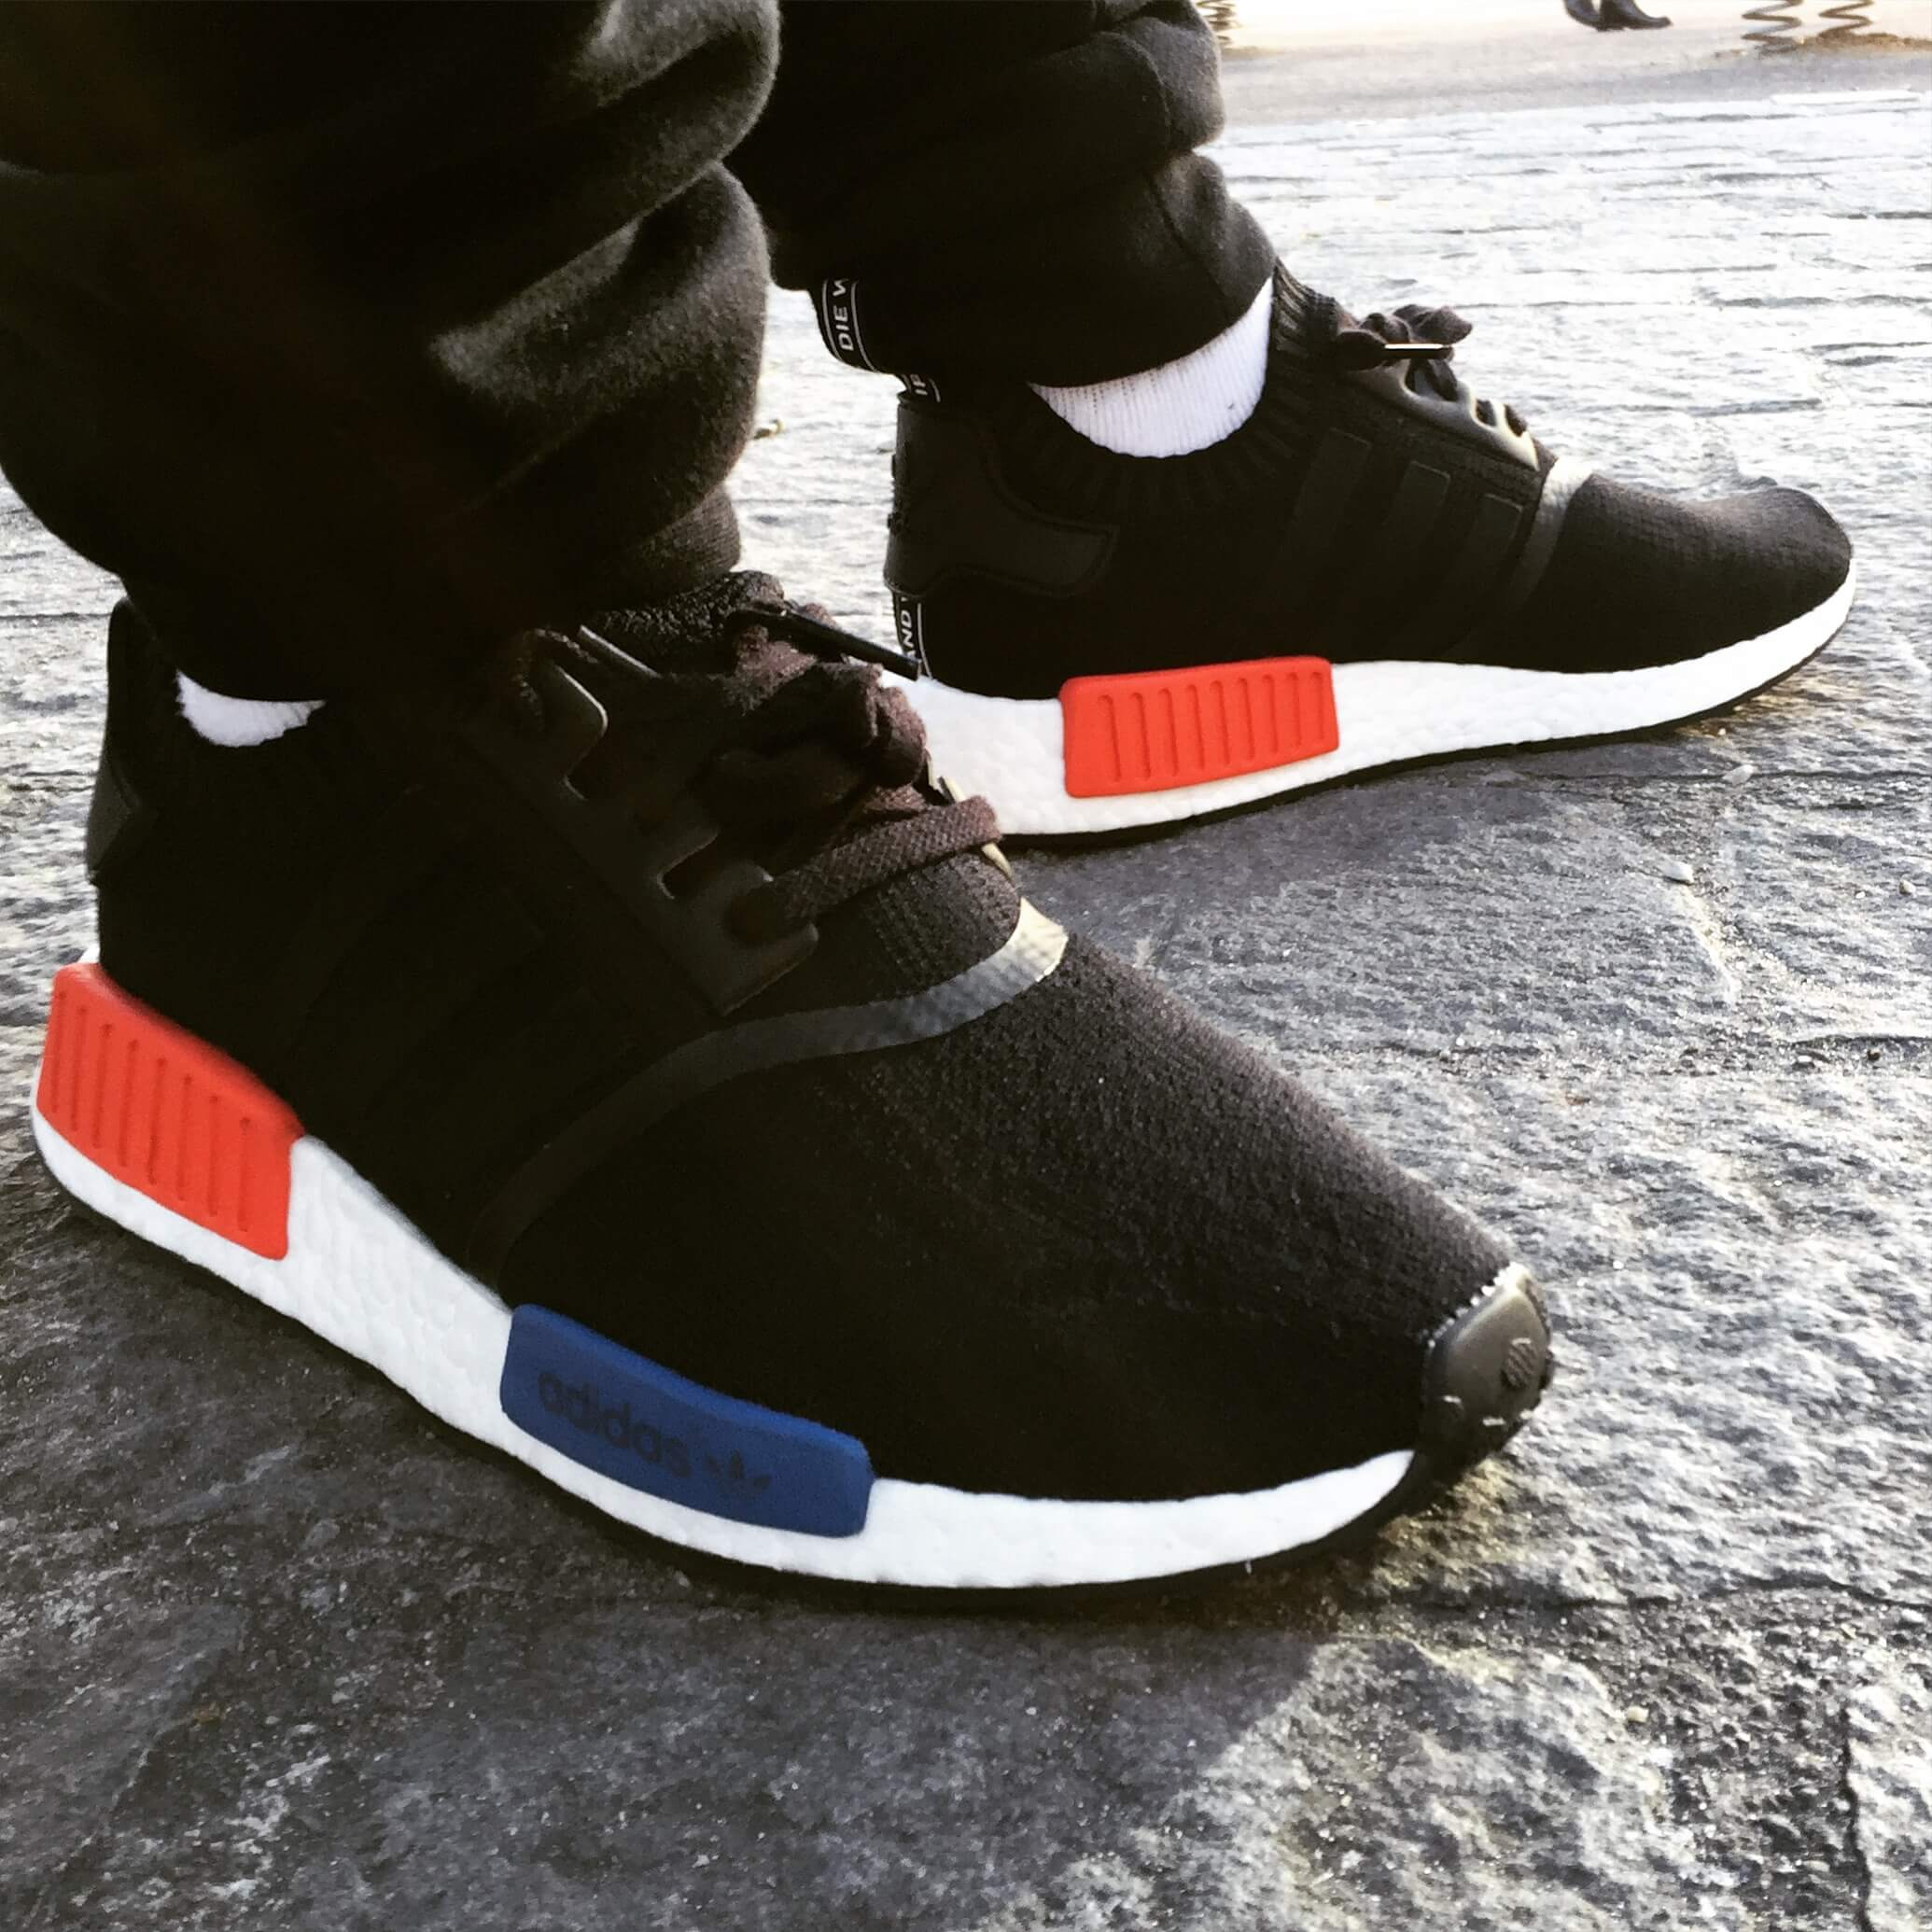 Adidas-NMD-OG-side-view-benstah